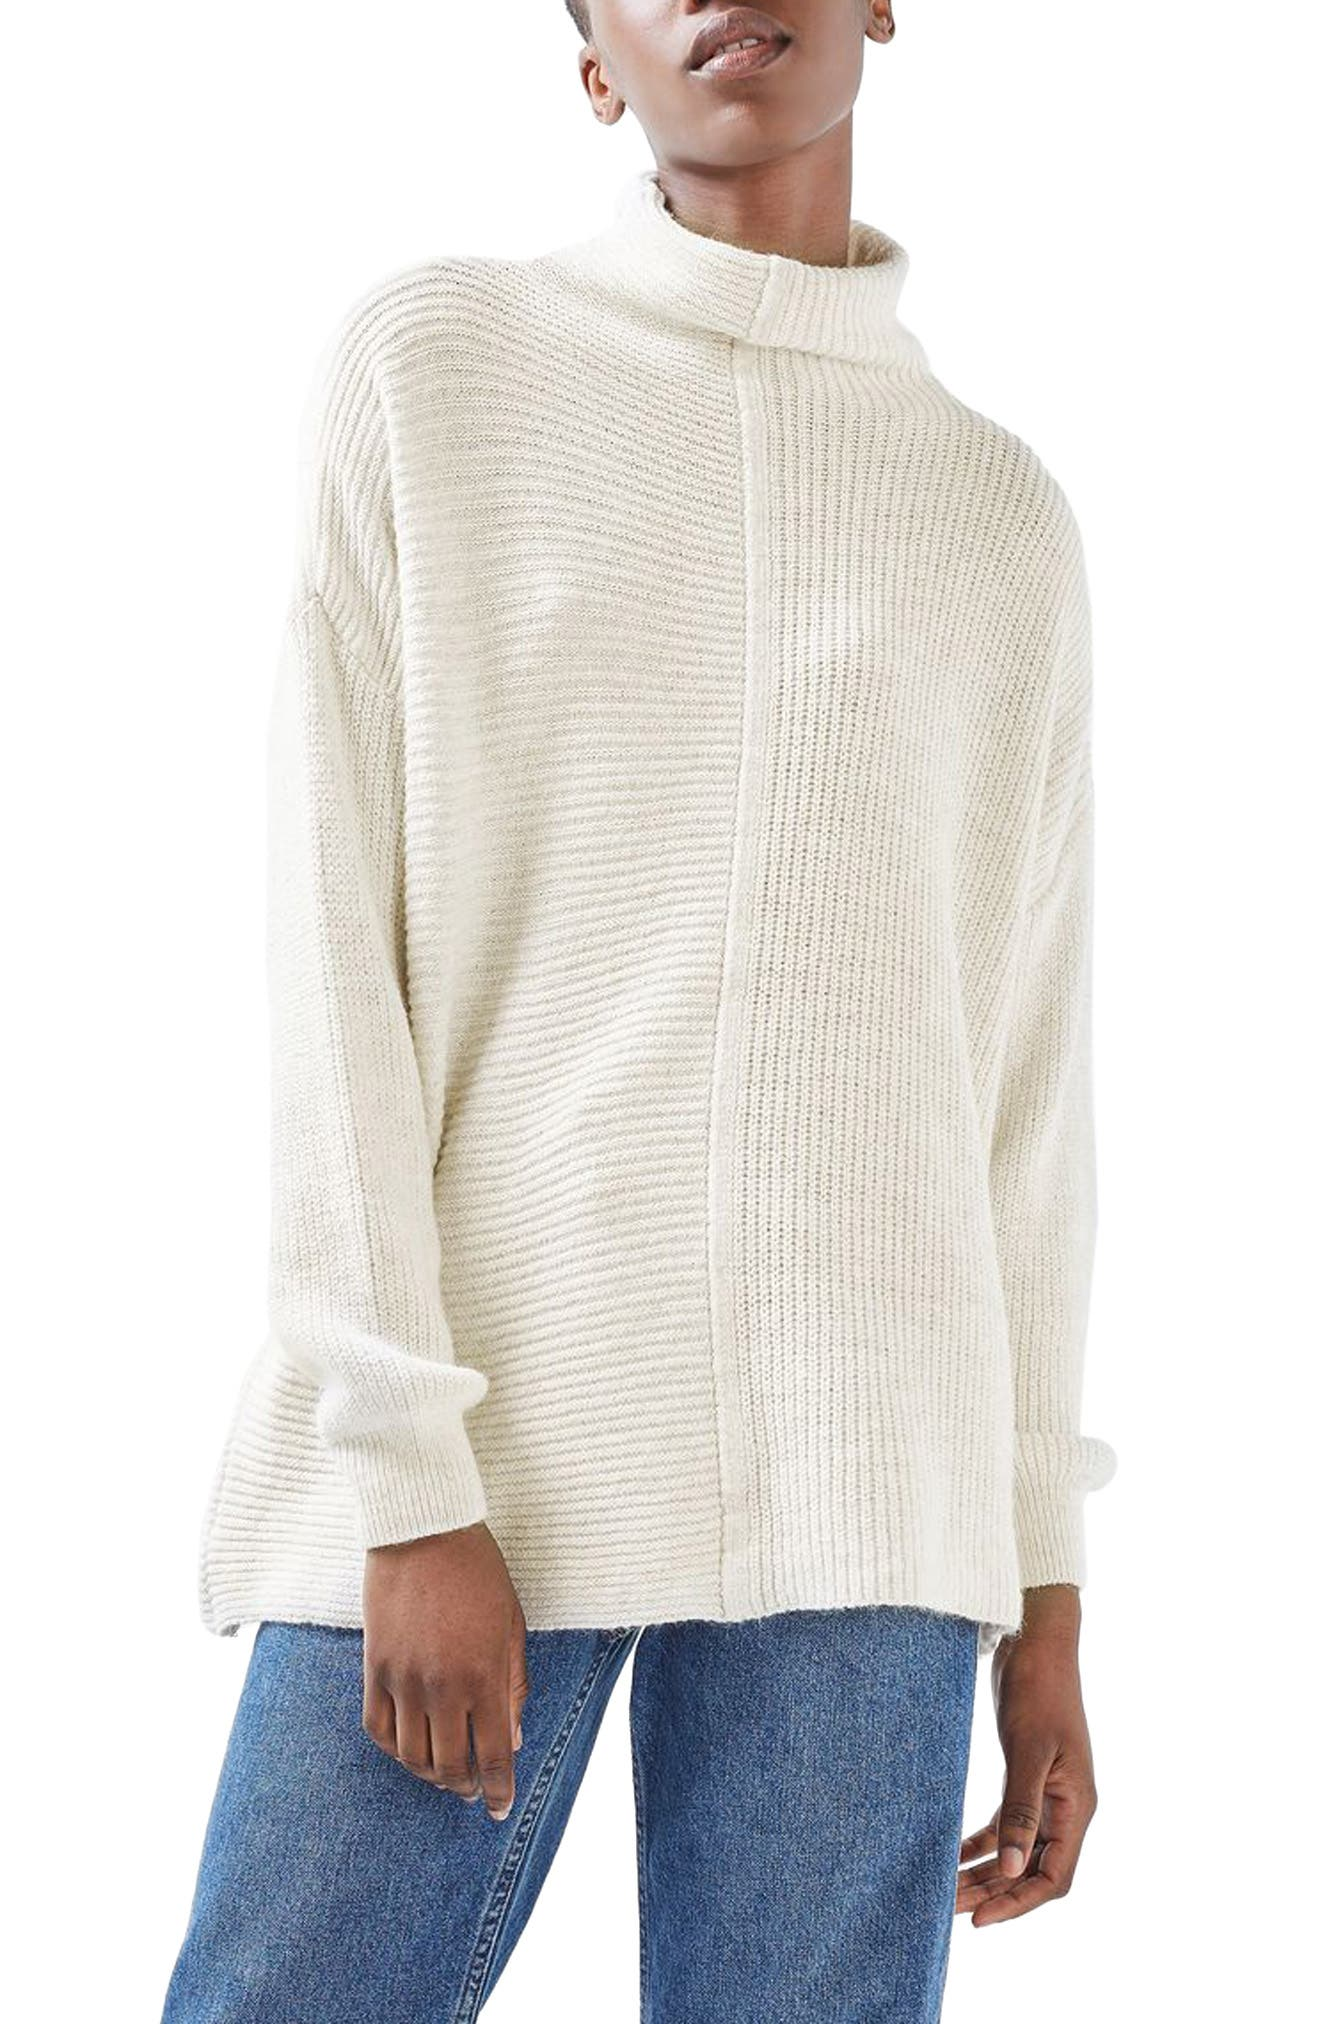 Alternate Image 1 Selected - Topshop Funnel Neck Mixed Knit Sweater (Regular & Petite)